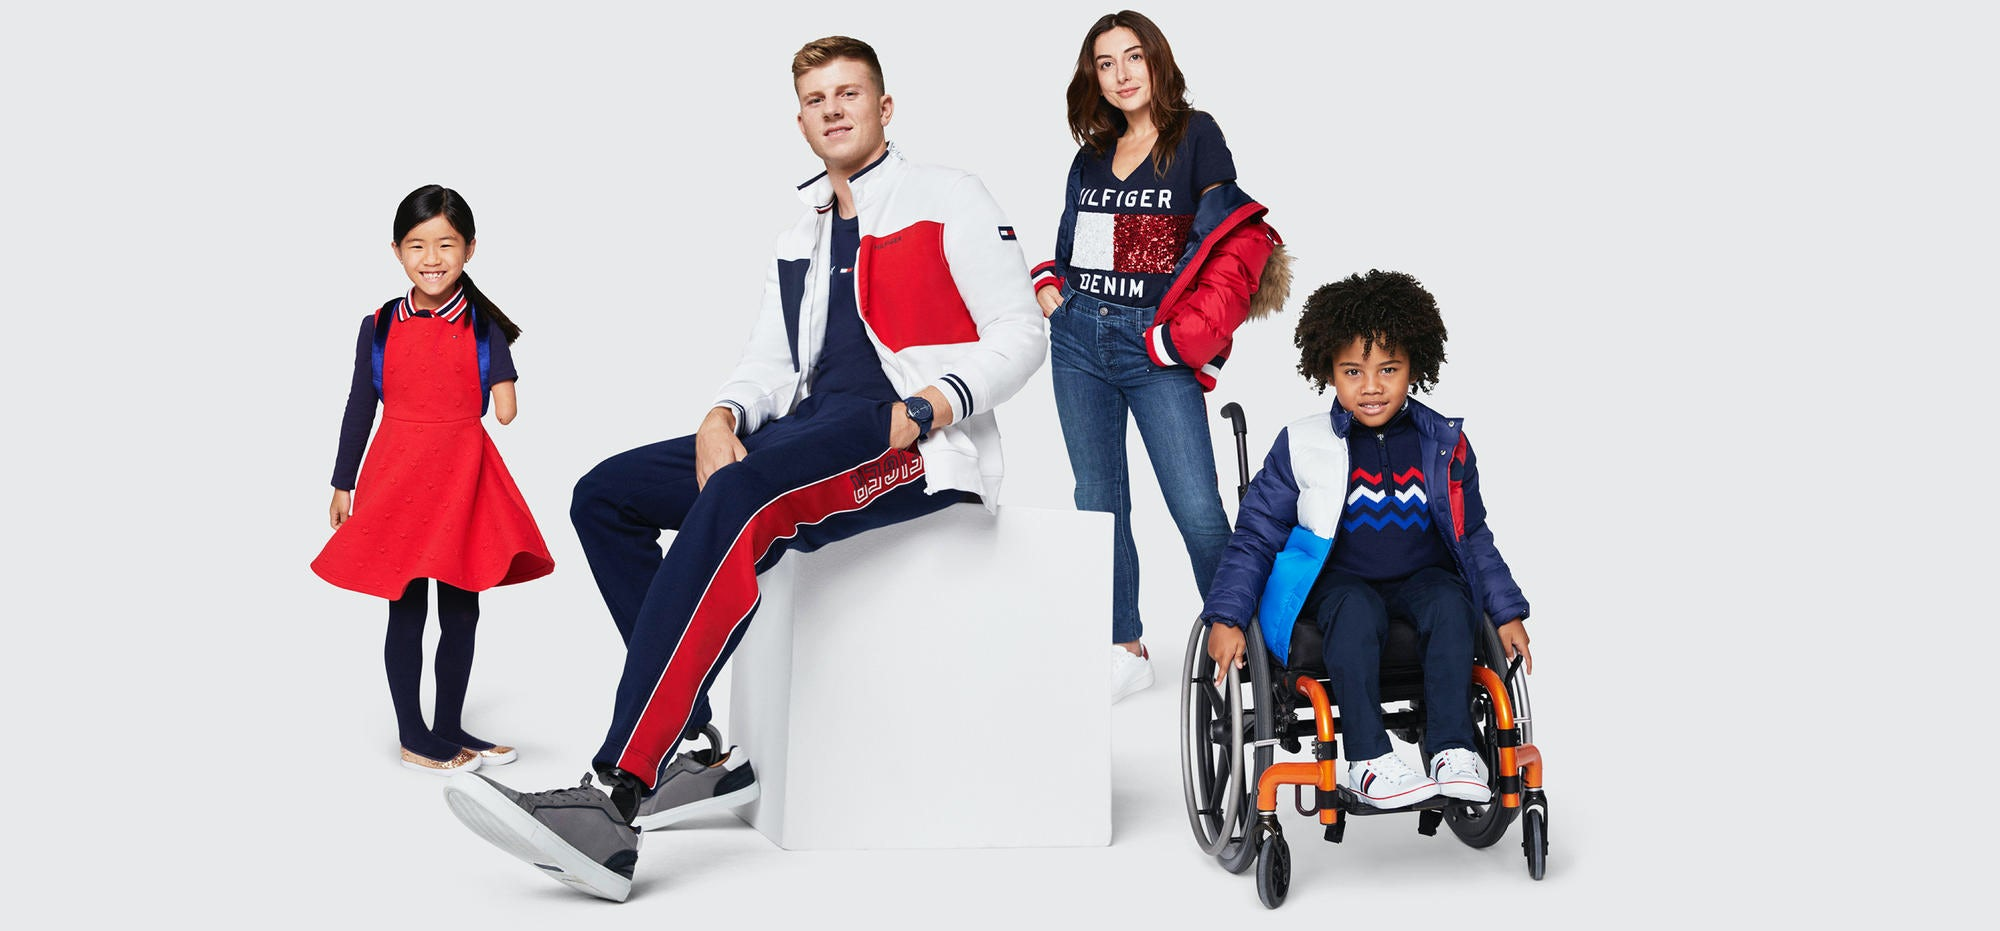 505eaabf05cbf Similarly, M&S's Easy Dressing kidswear range was conceived, designed and  developed with its customers over a two-year period, starting with a survey  of 300 ...